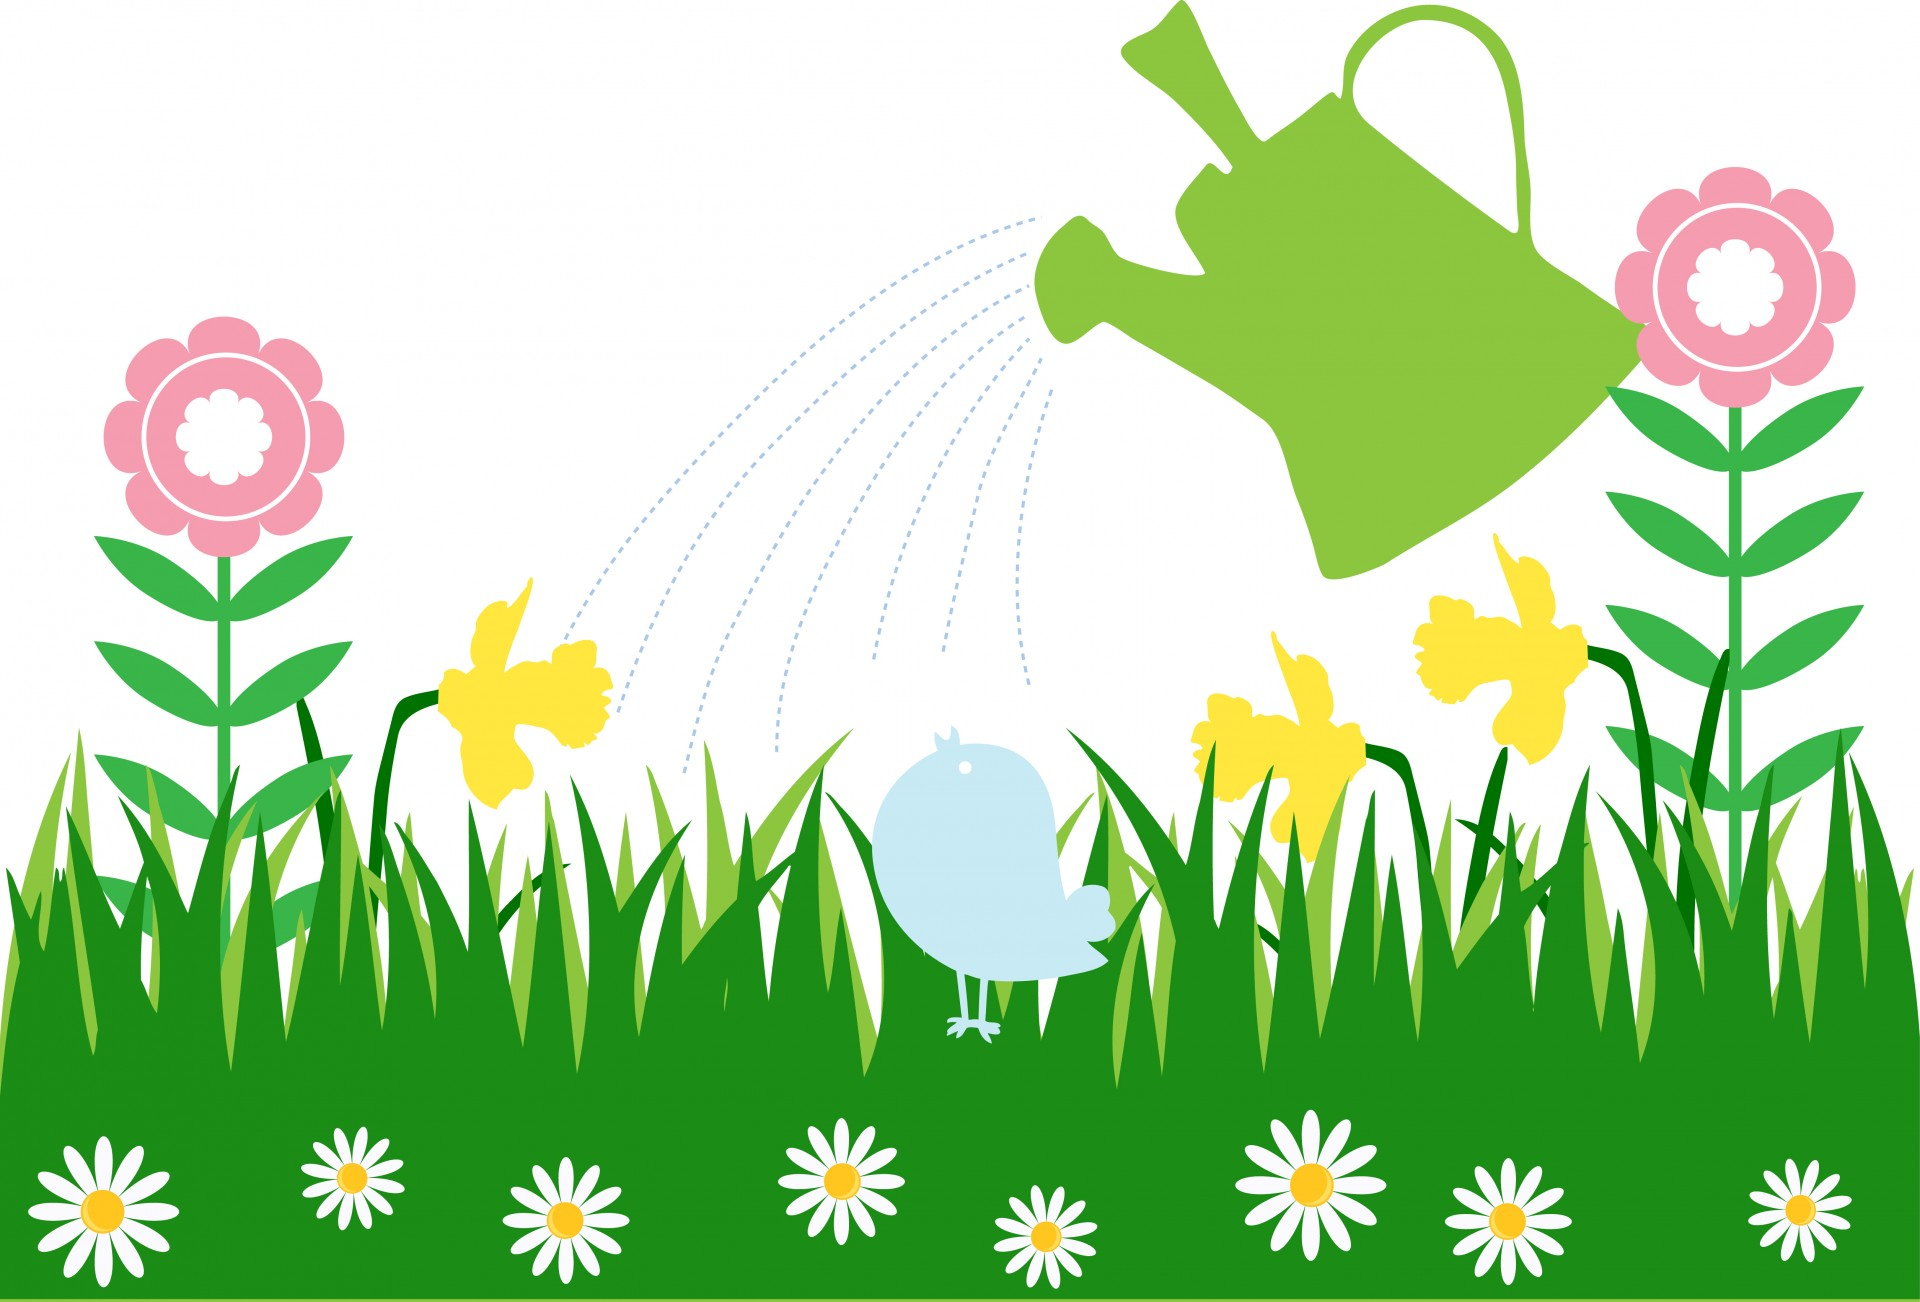 Garden Clipart At Getdrawings Com Free For Personal Use Garden